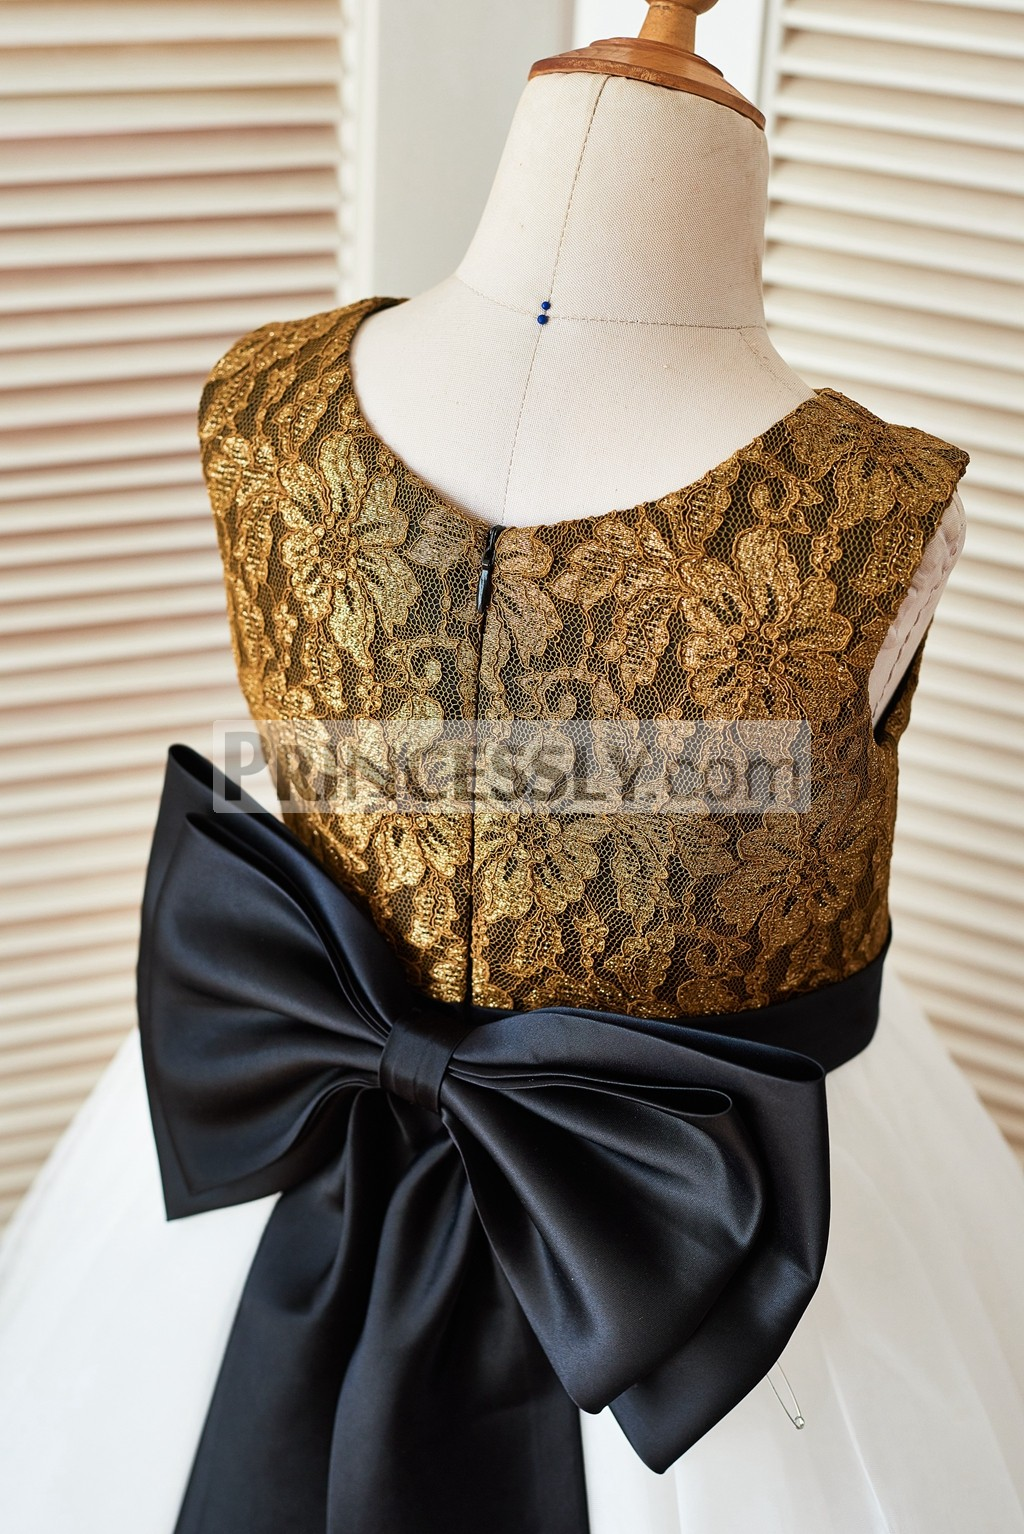 Gold Lace Ivory Tulle Flower Girl Dress With Black Belt And Big Bow  Avivaly-3341